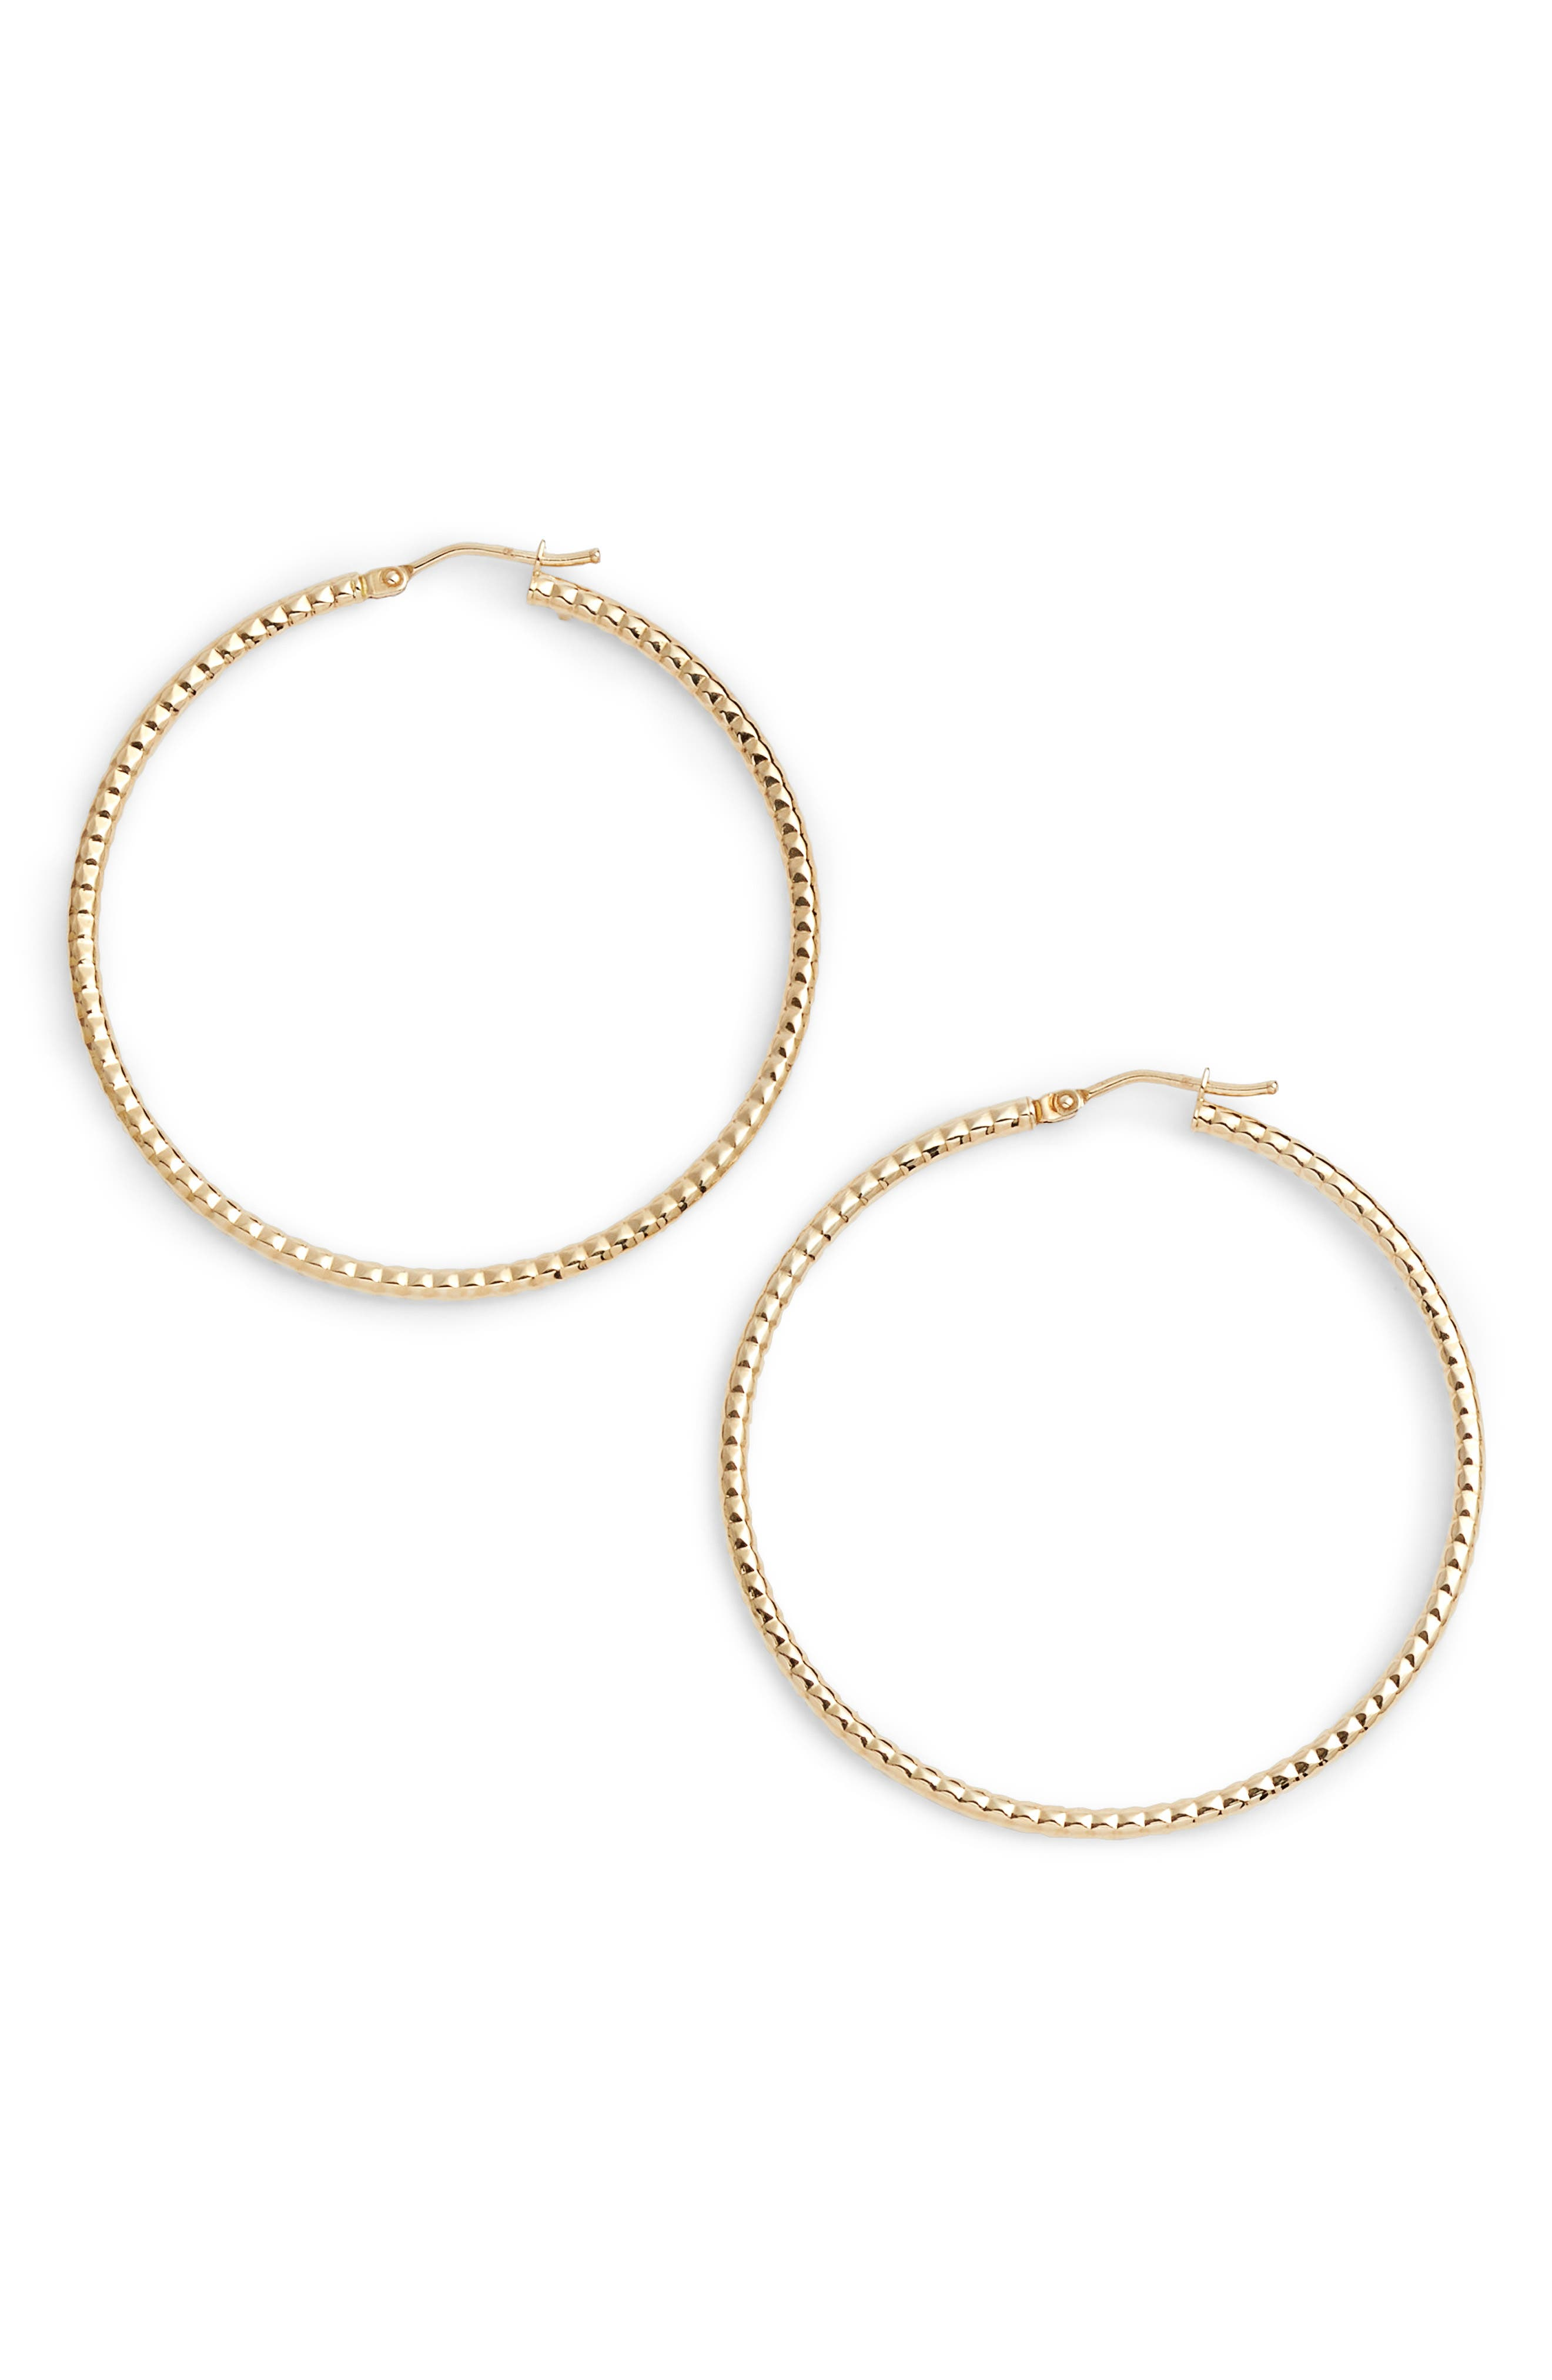 Textured Hoop Earrings,                             Main thumbnail 1, color,                             Yellow Gold